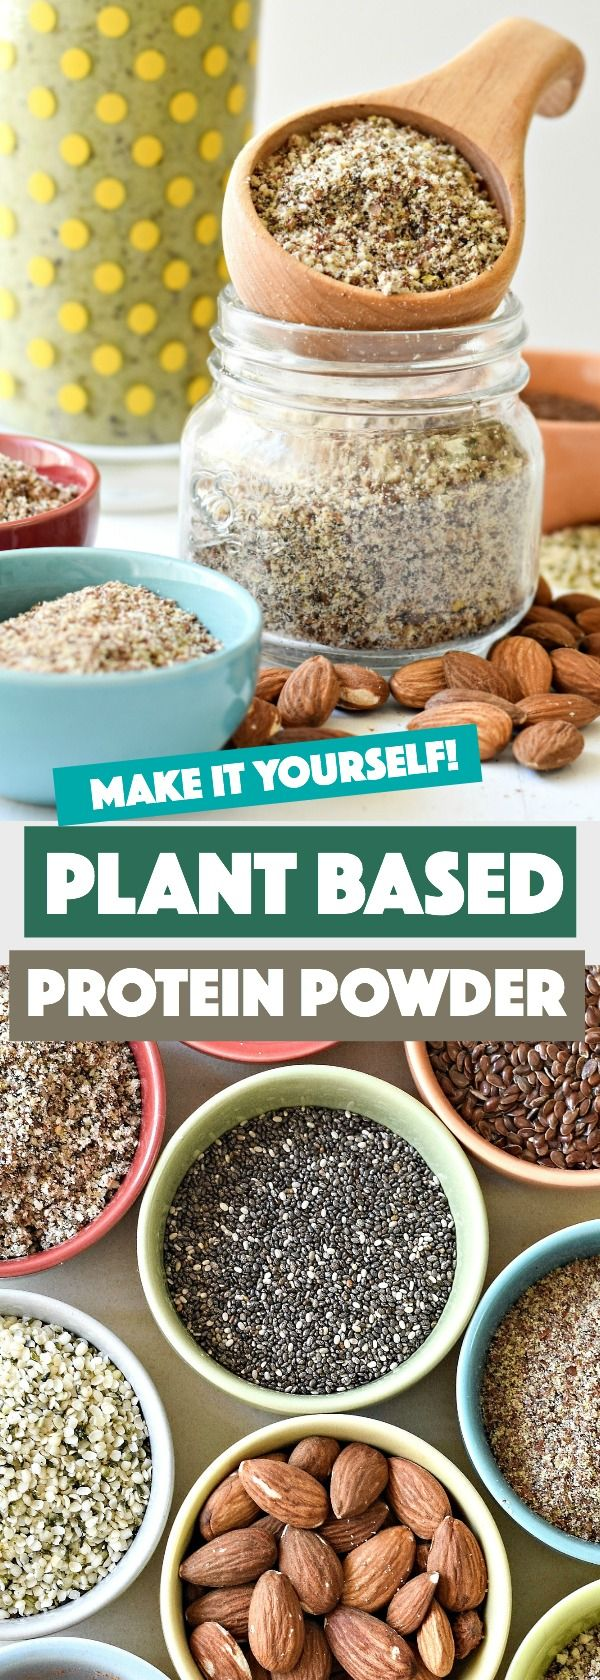 DIY Plant Based Protein Powder - Fork and Beans